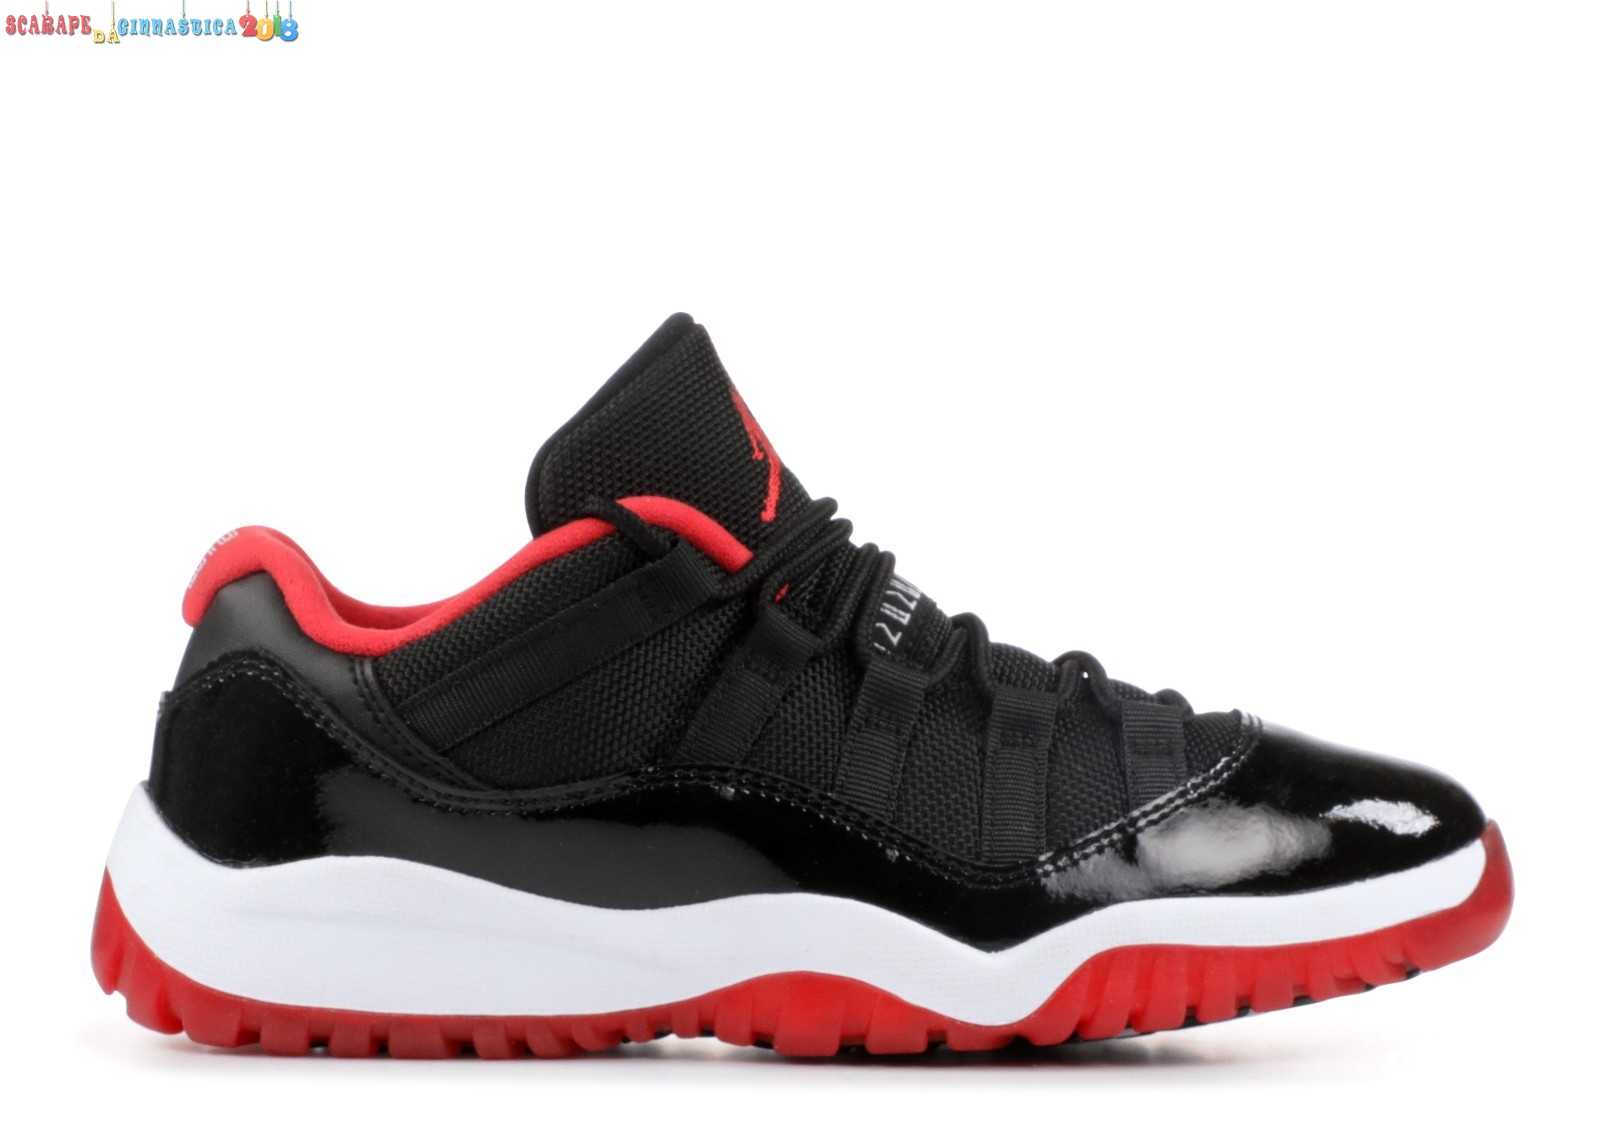 "Replica Air Jordan 11 Low Bp (Ps) ""Bred"" Nero Bianca (505835-012) - SCARPE BASKET"